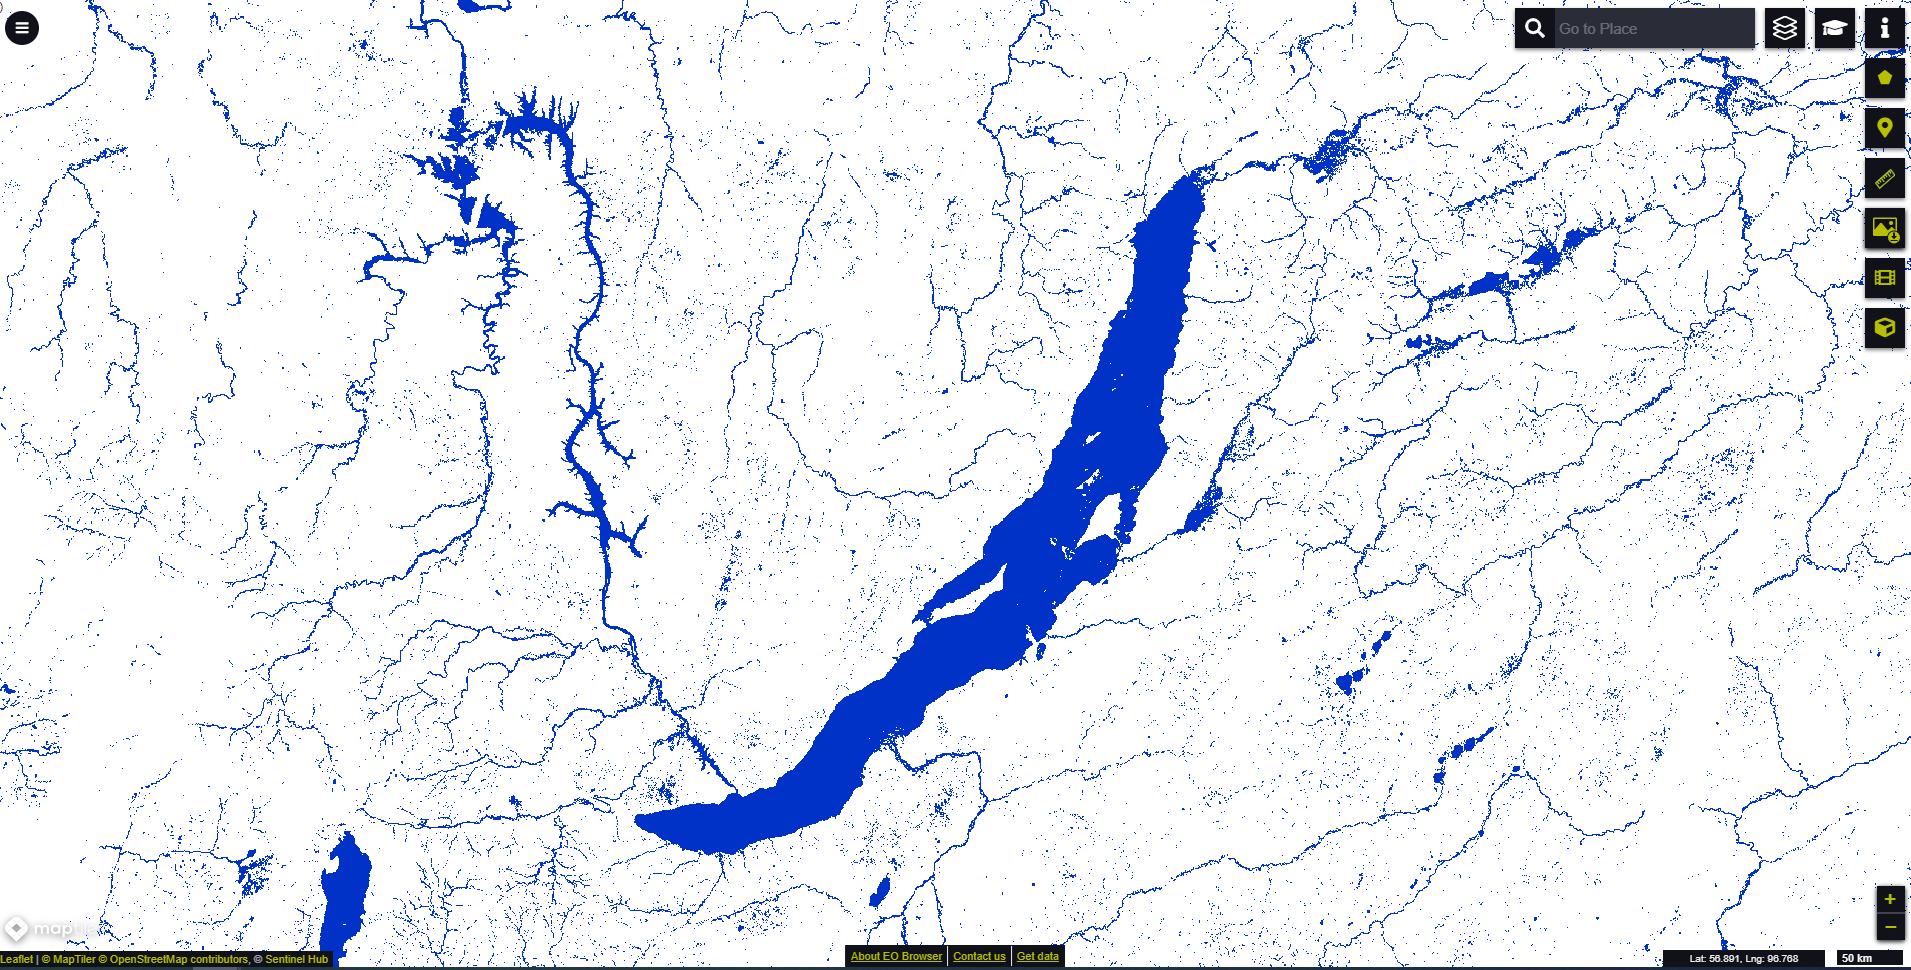 Water bodies map Baikal lake